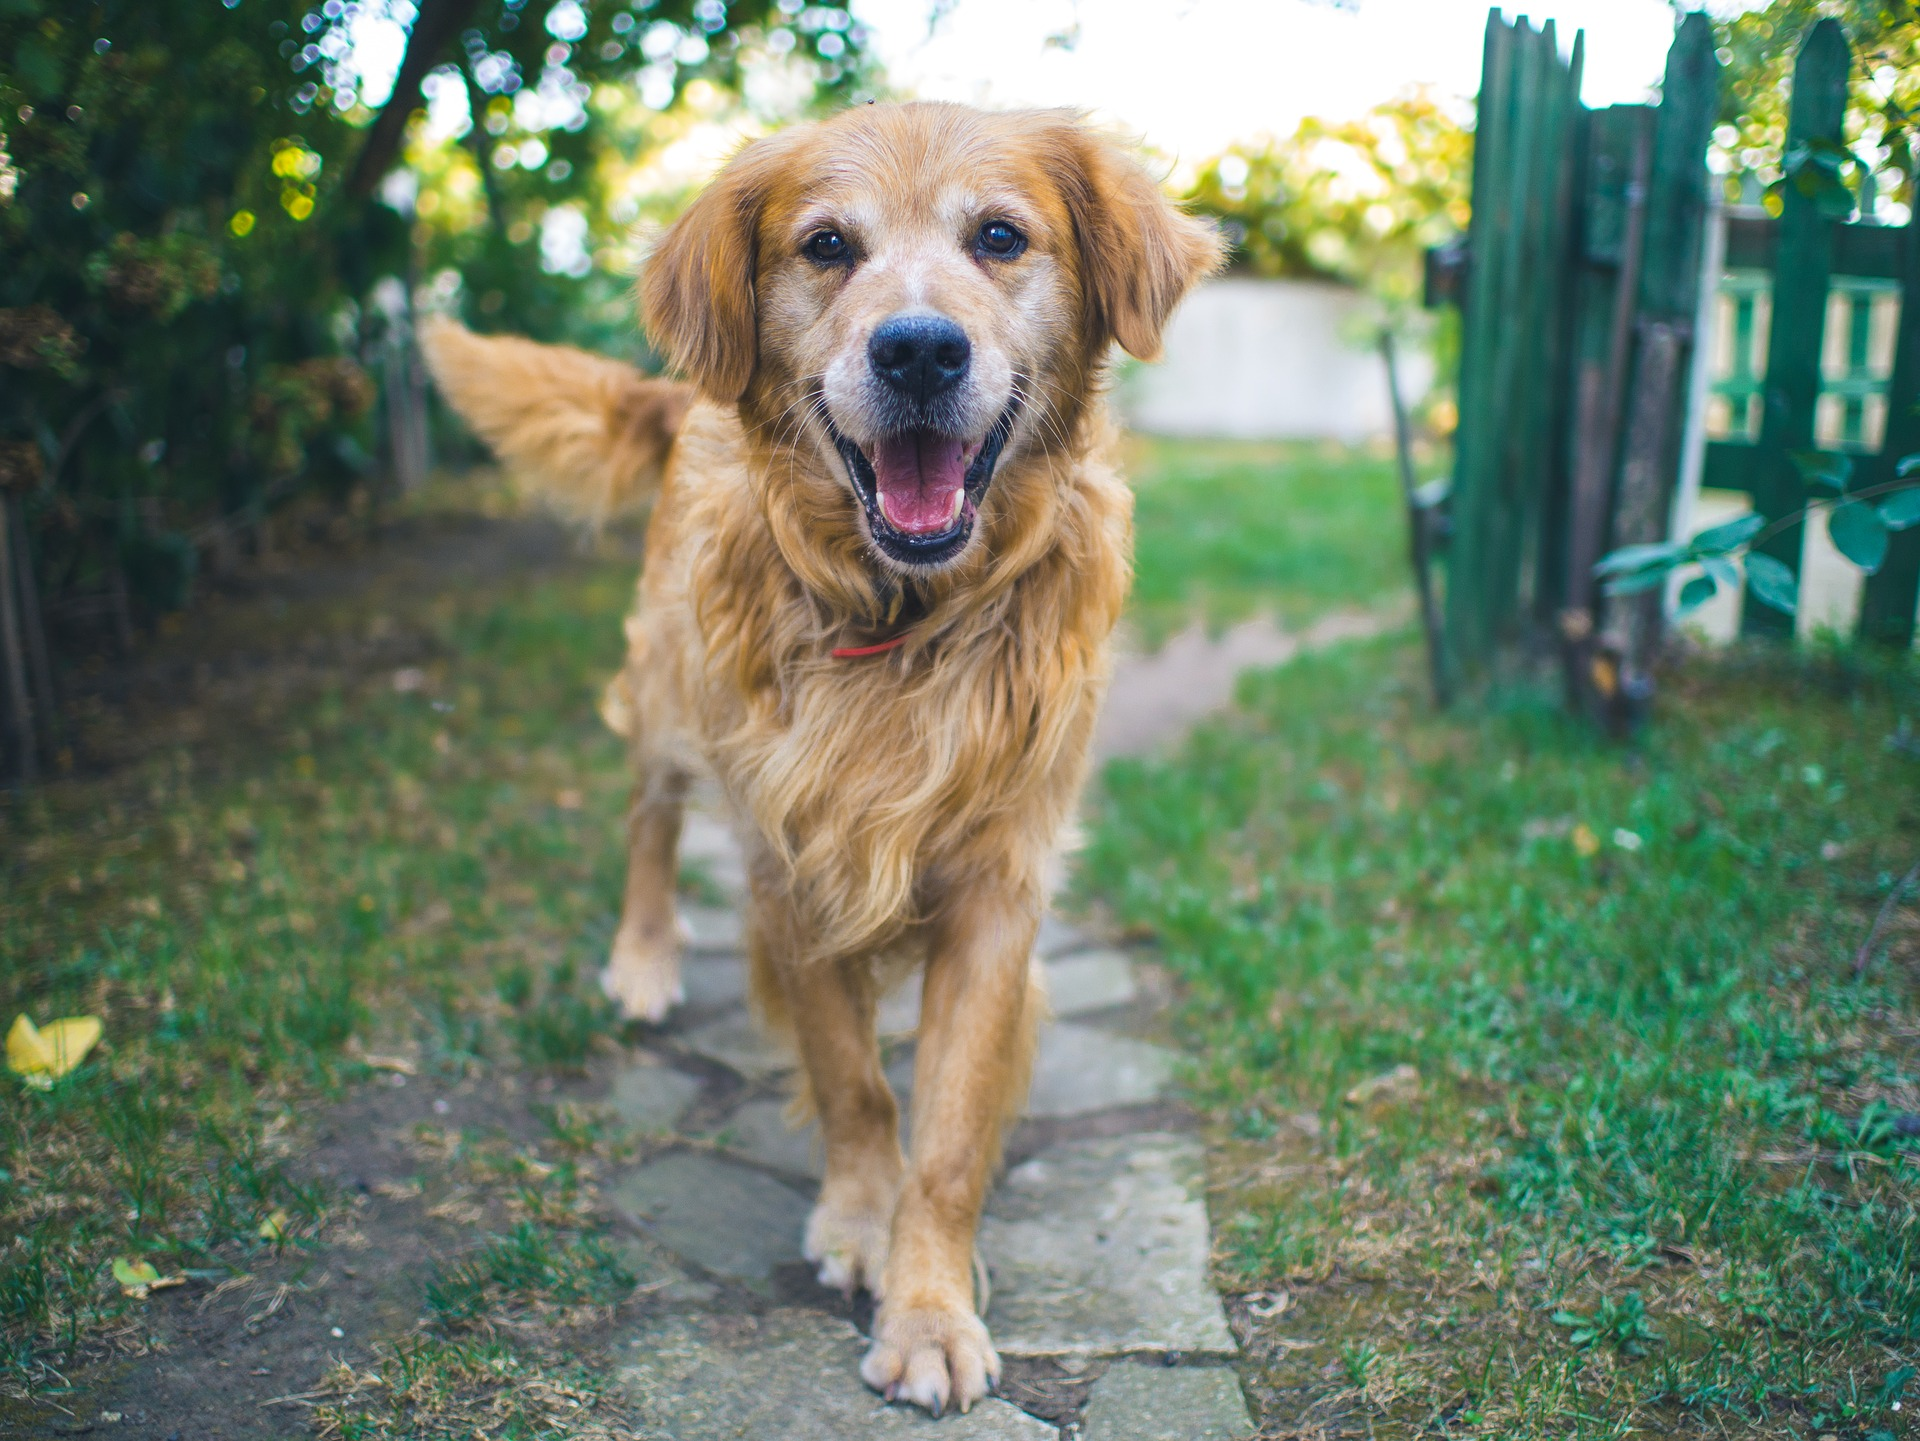 Boost confidence within your dog